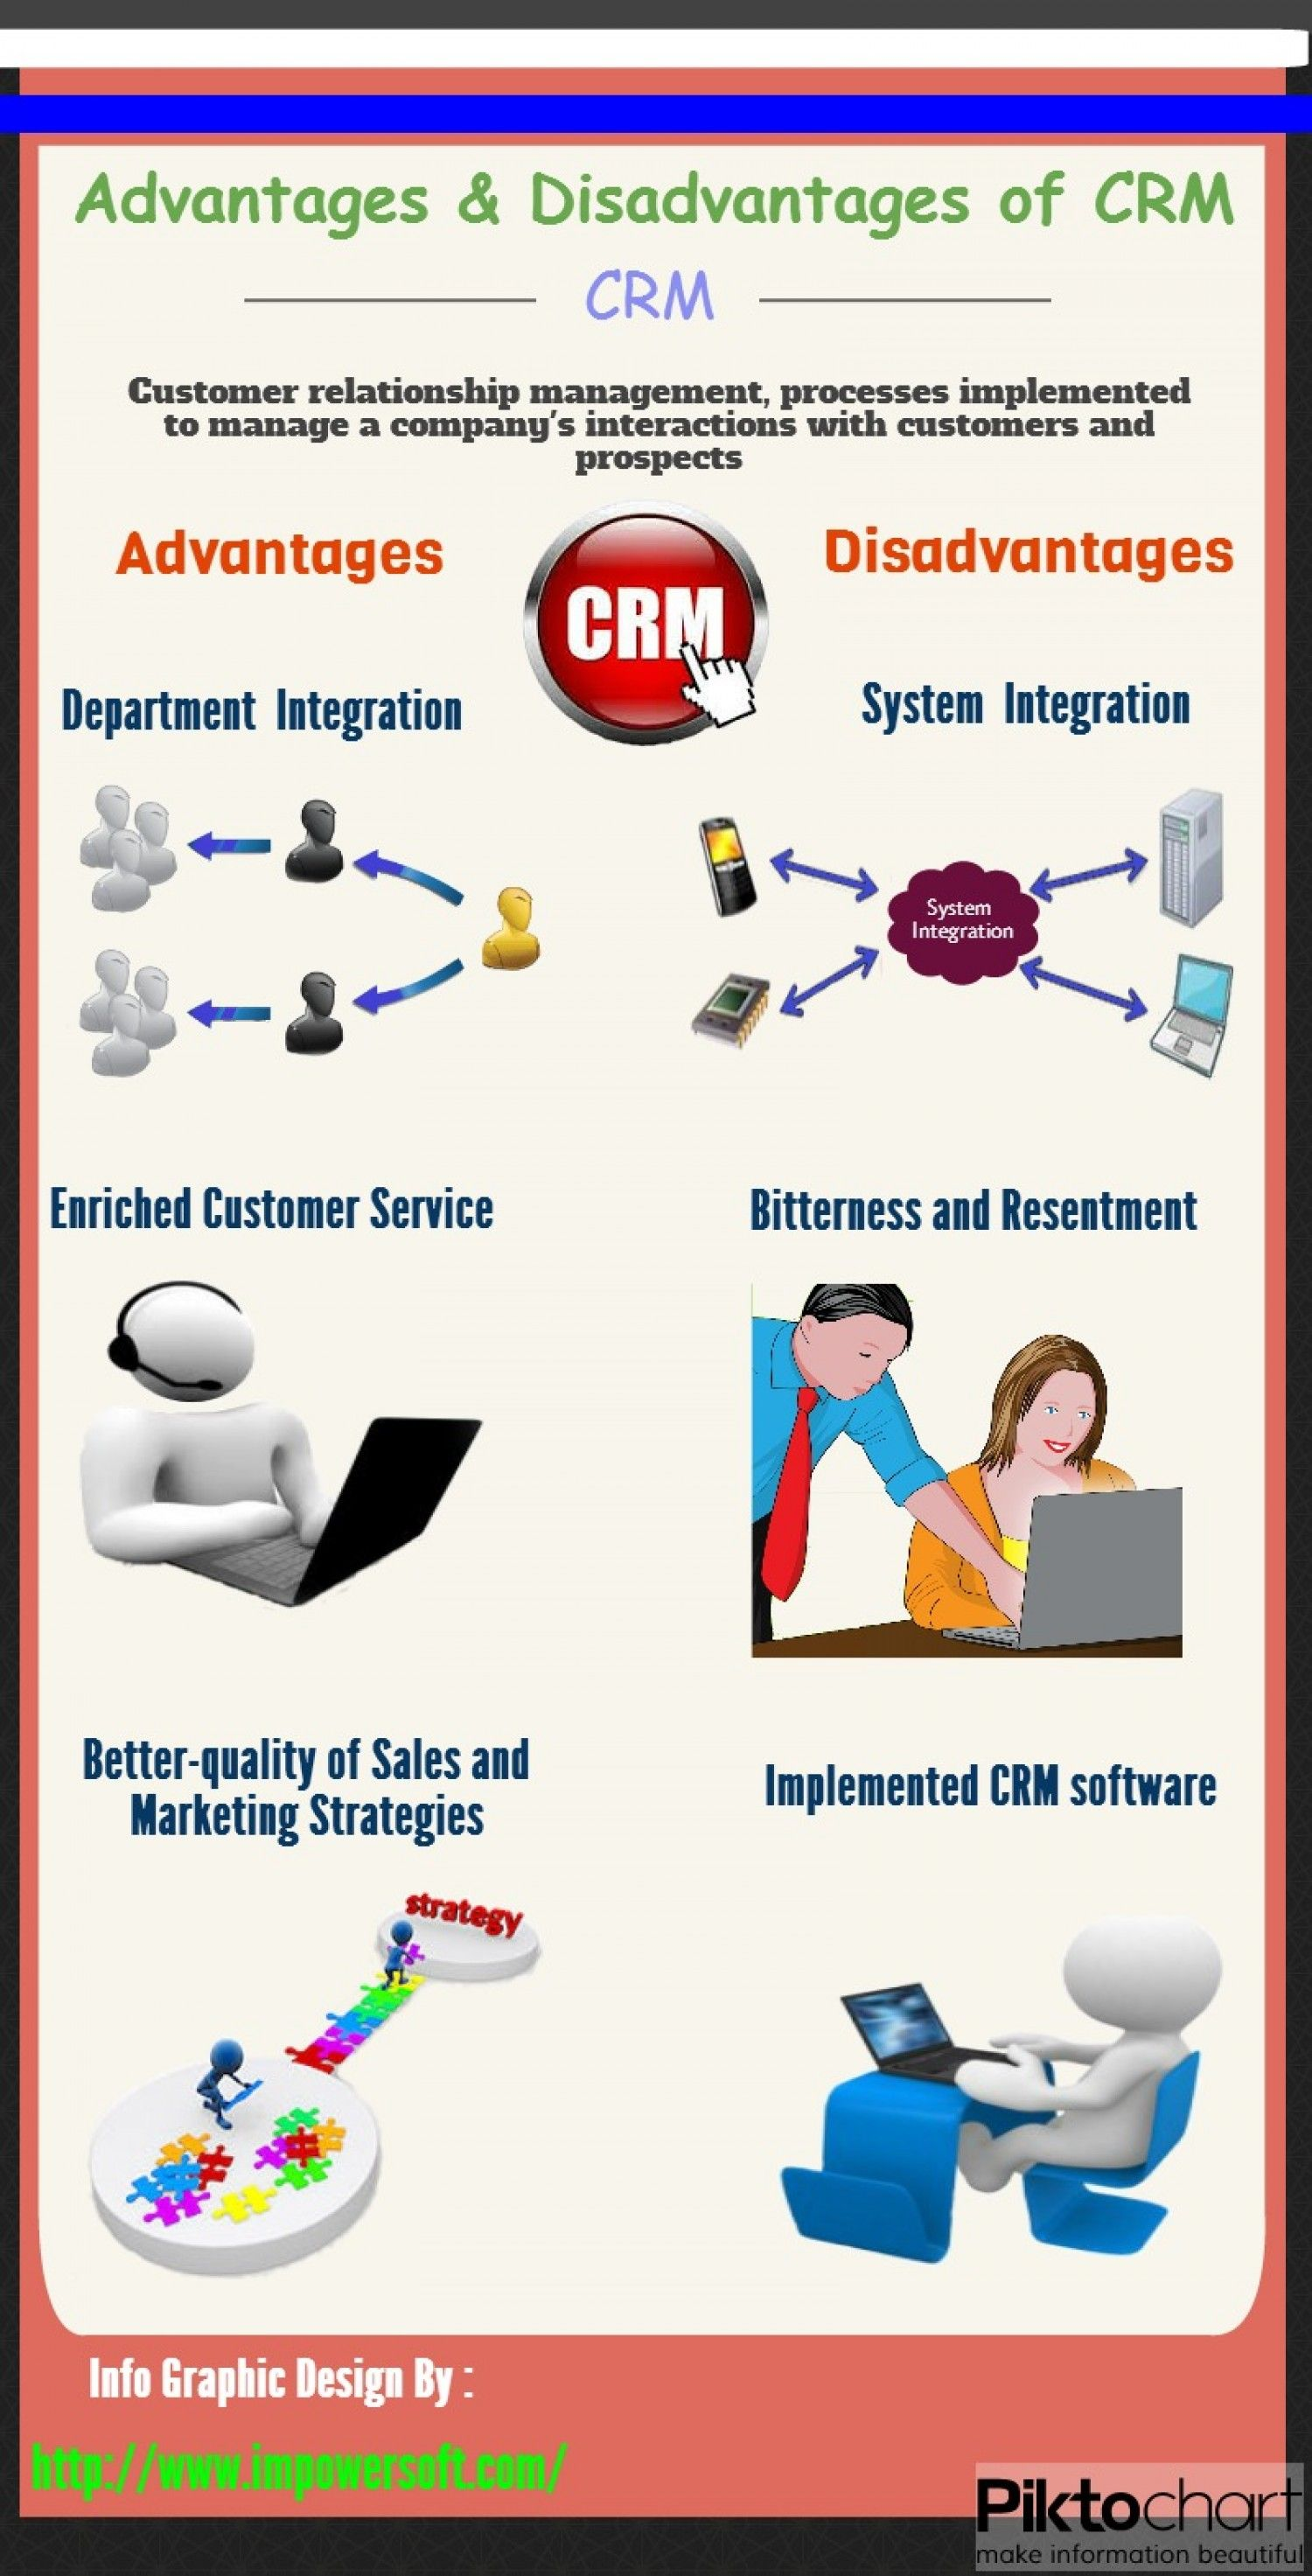 Advantages and disadvantages of crm software visually